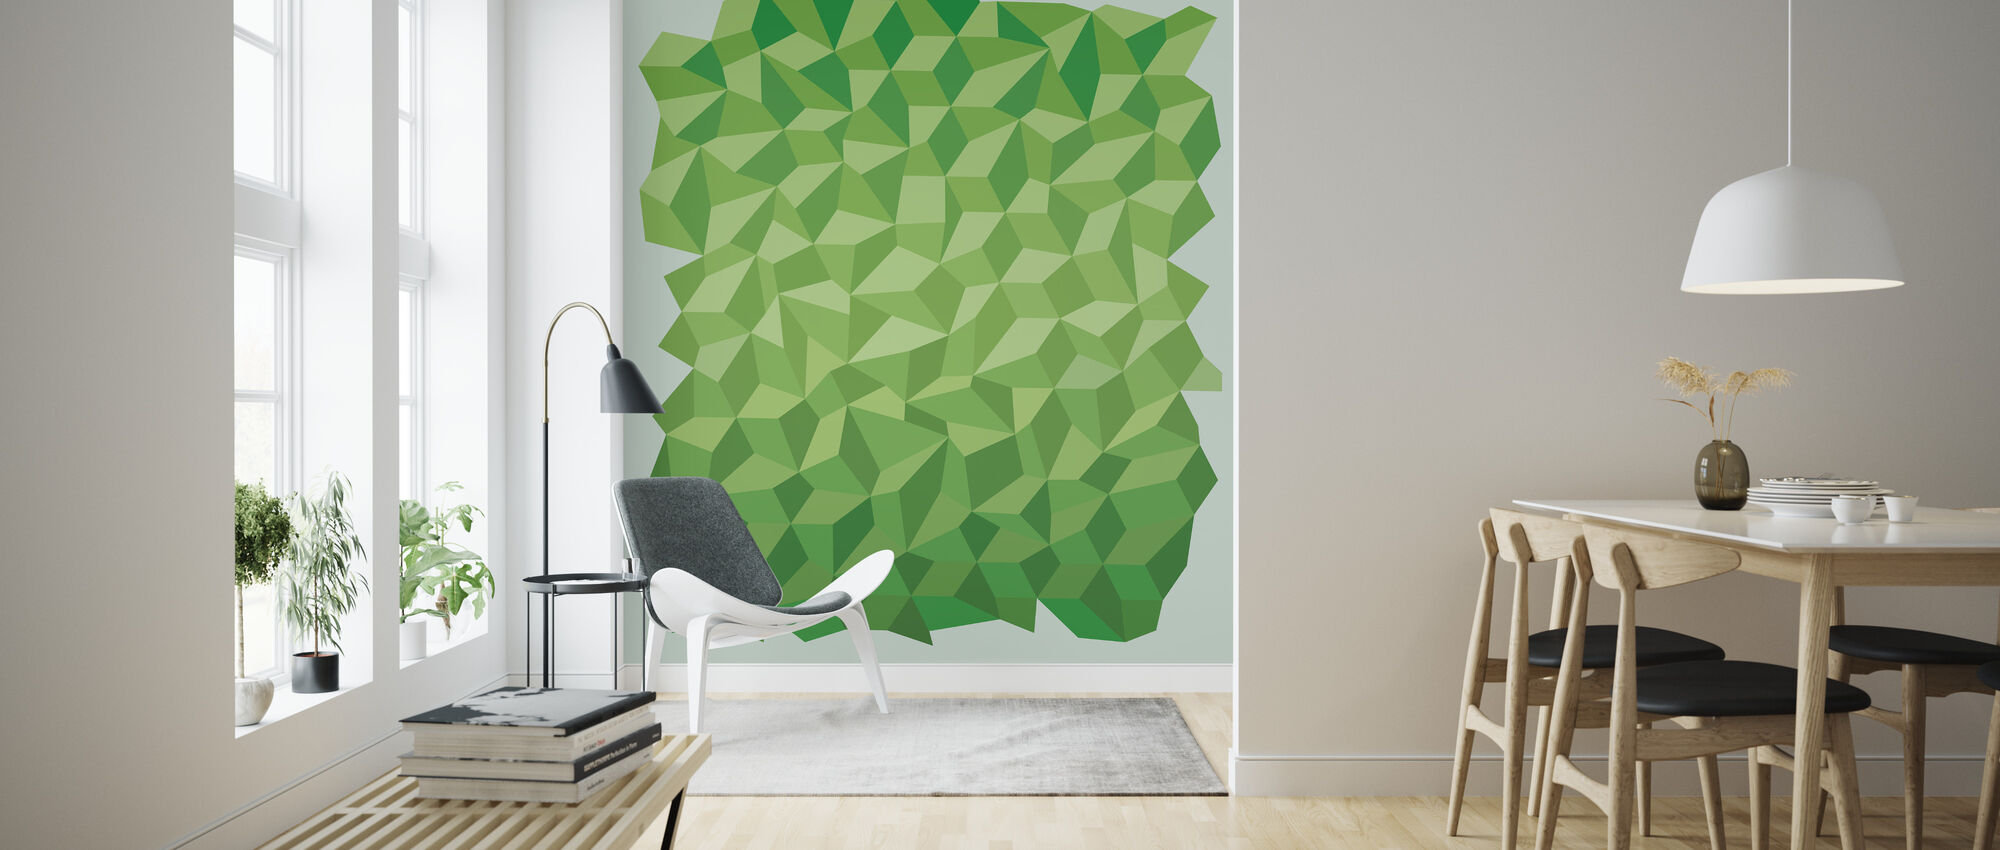 Green Polygon Background - Wallpaper - Living Room